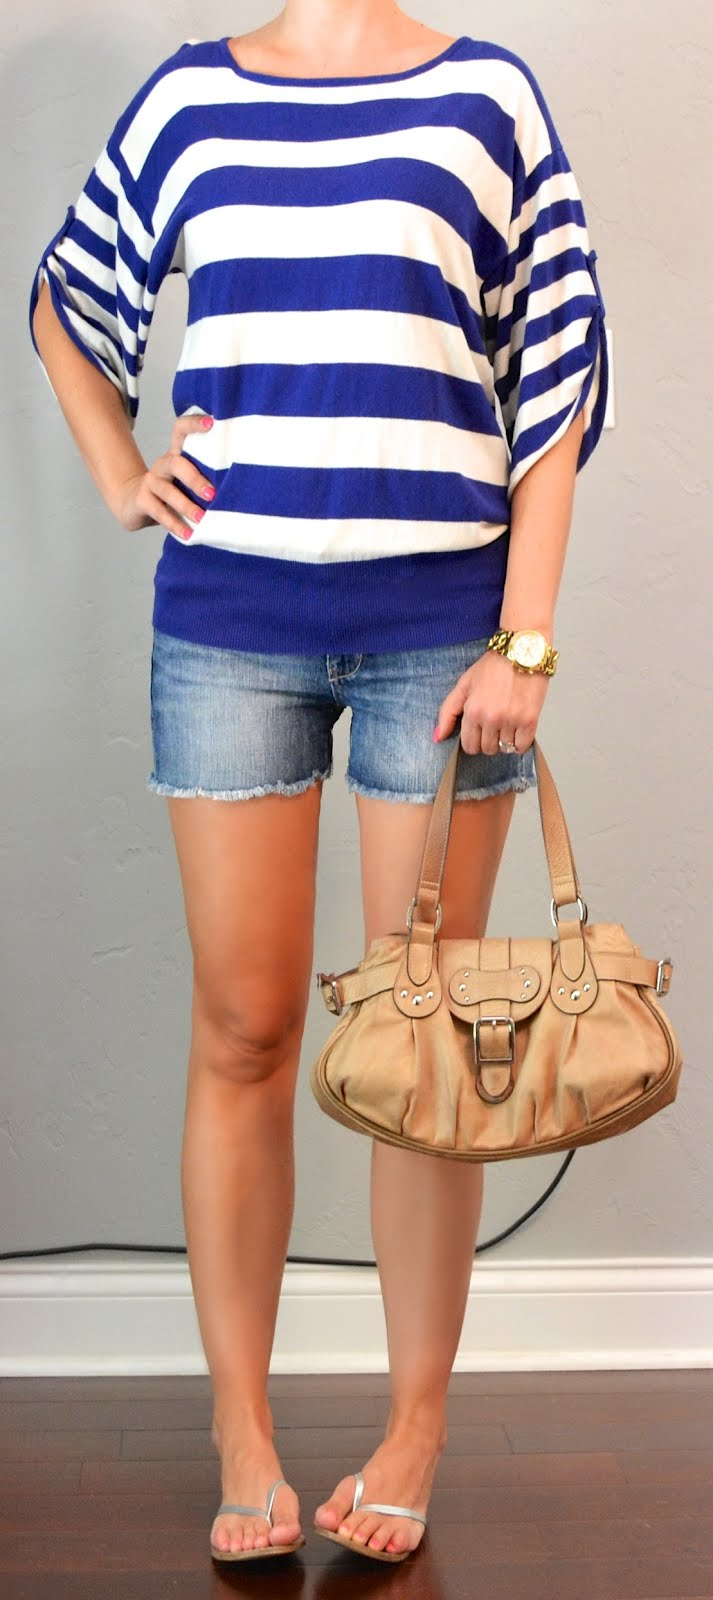 480aada3c669 outfit post  purple   white striped top